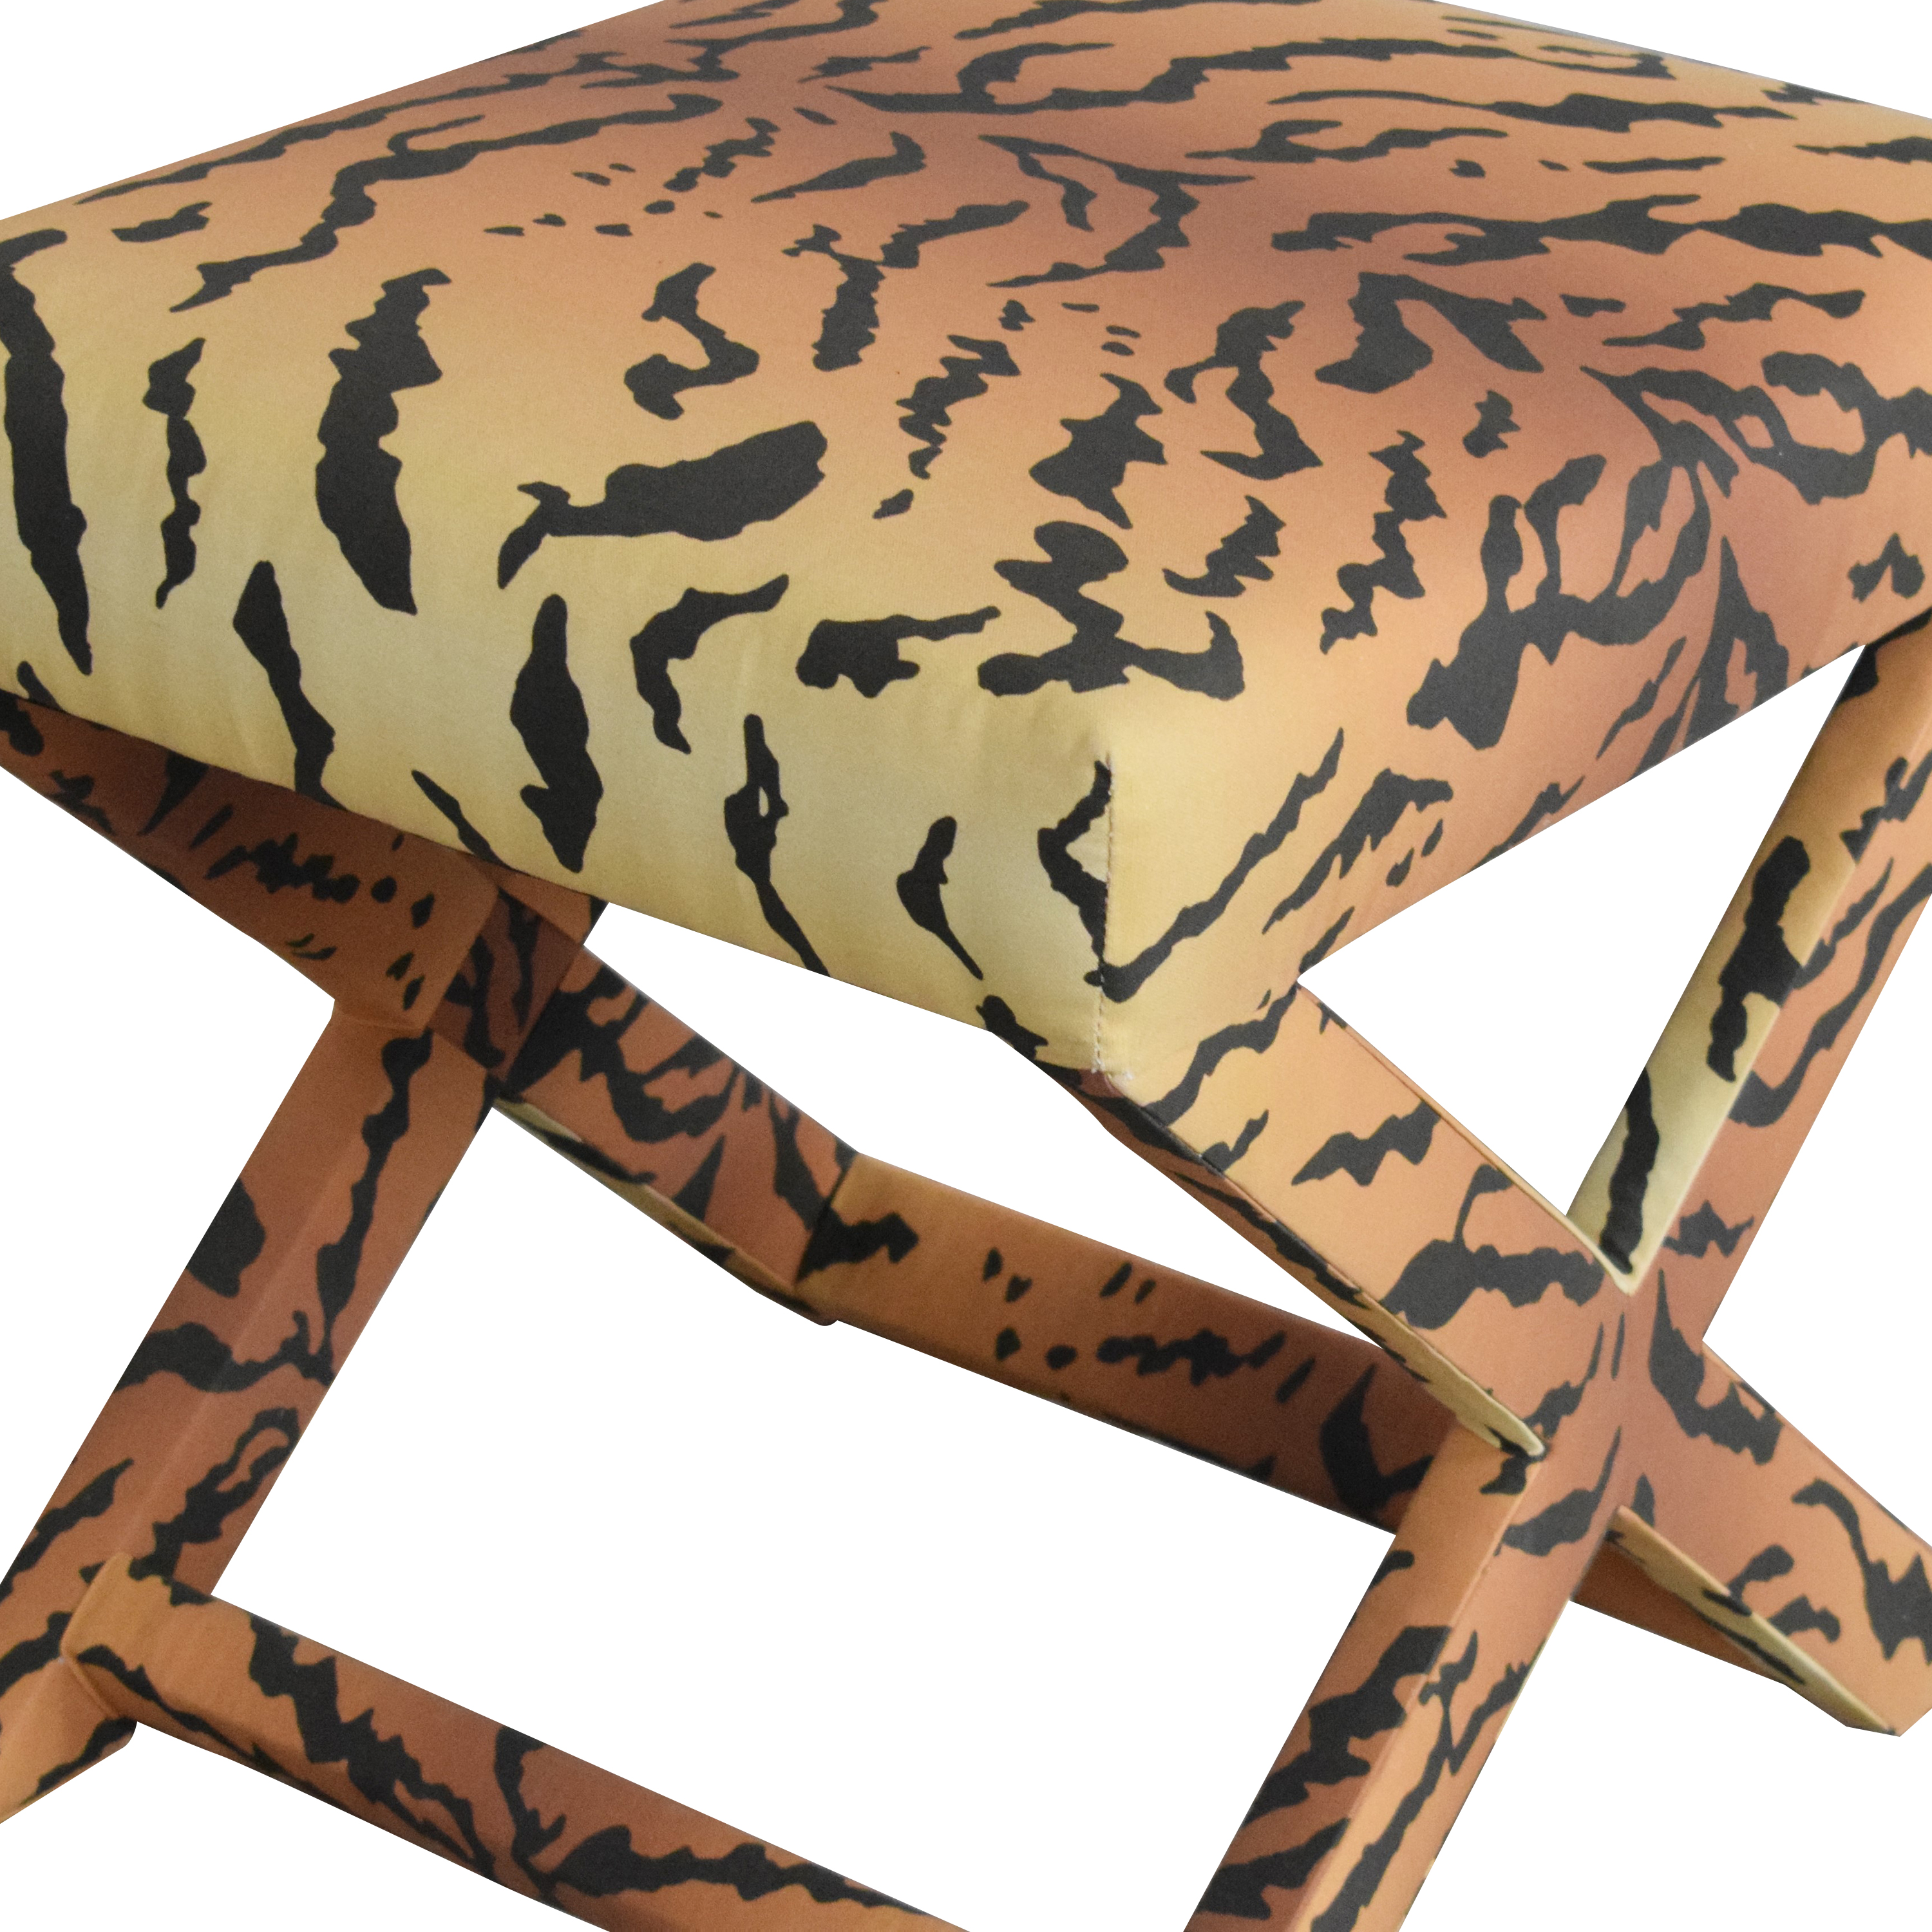 The Inside The Inside Tawny Tiger X Bench price